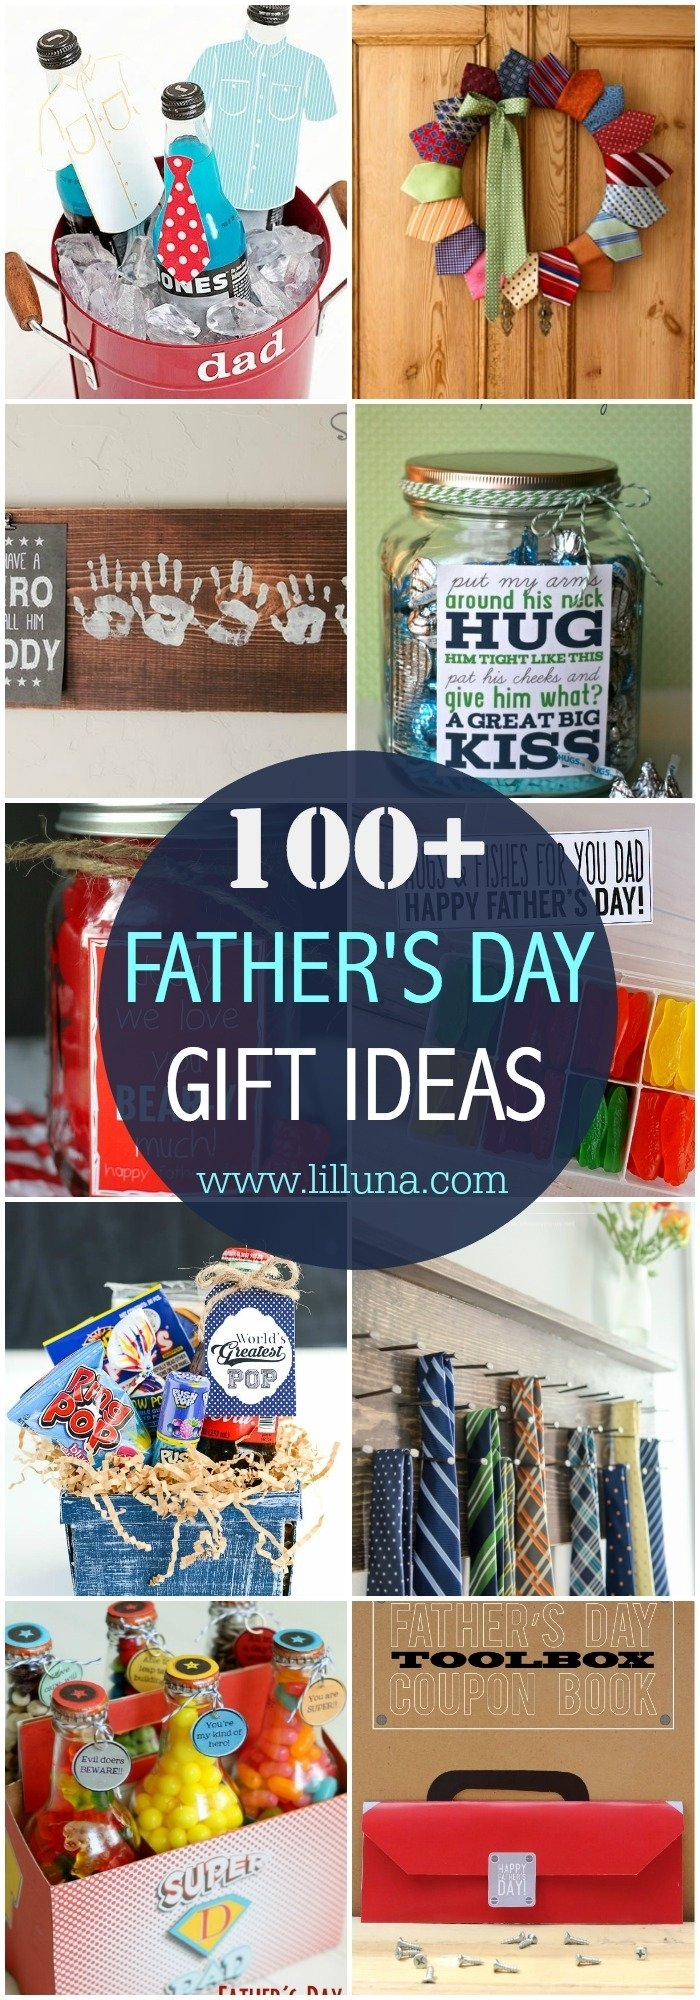 10 Gorgeous Good Fathers Day Gift Ideas fathers day gift ideas 1 2020